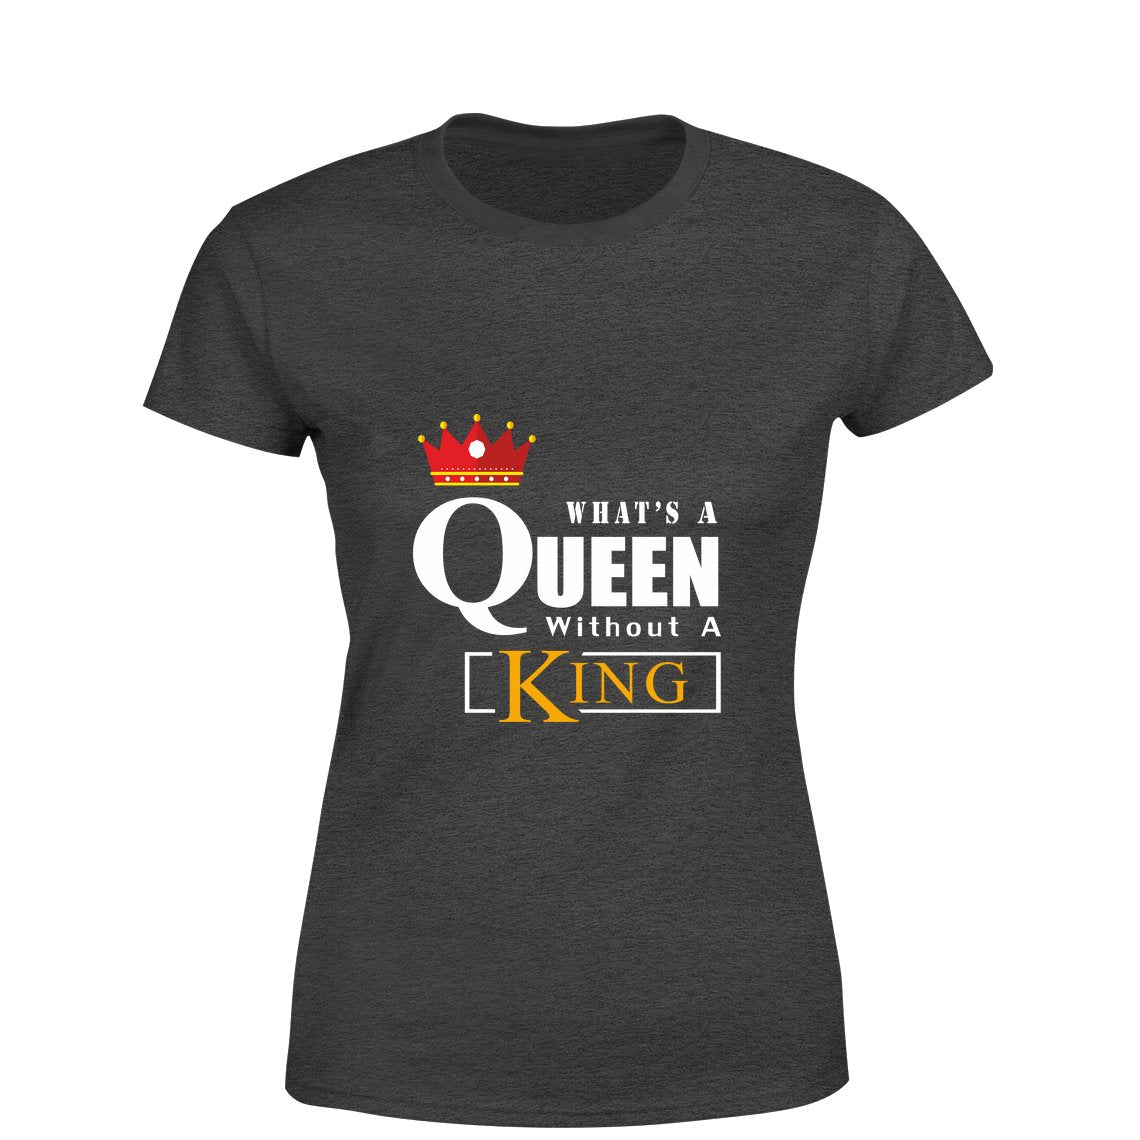 What's a Queen without A King T-shirt